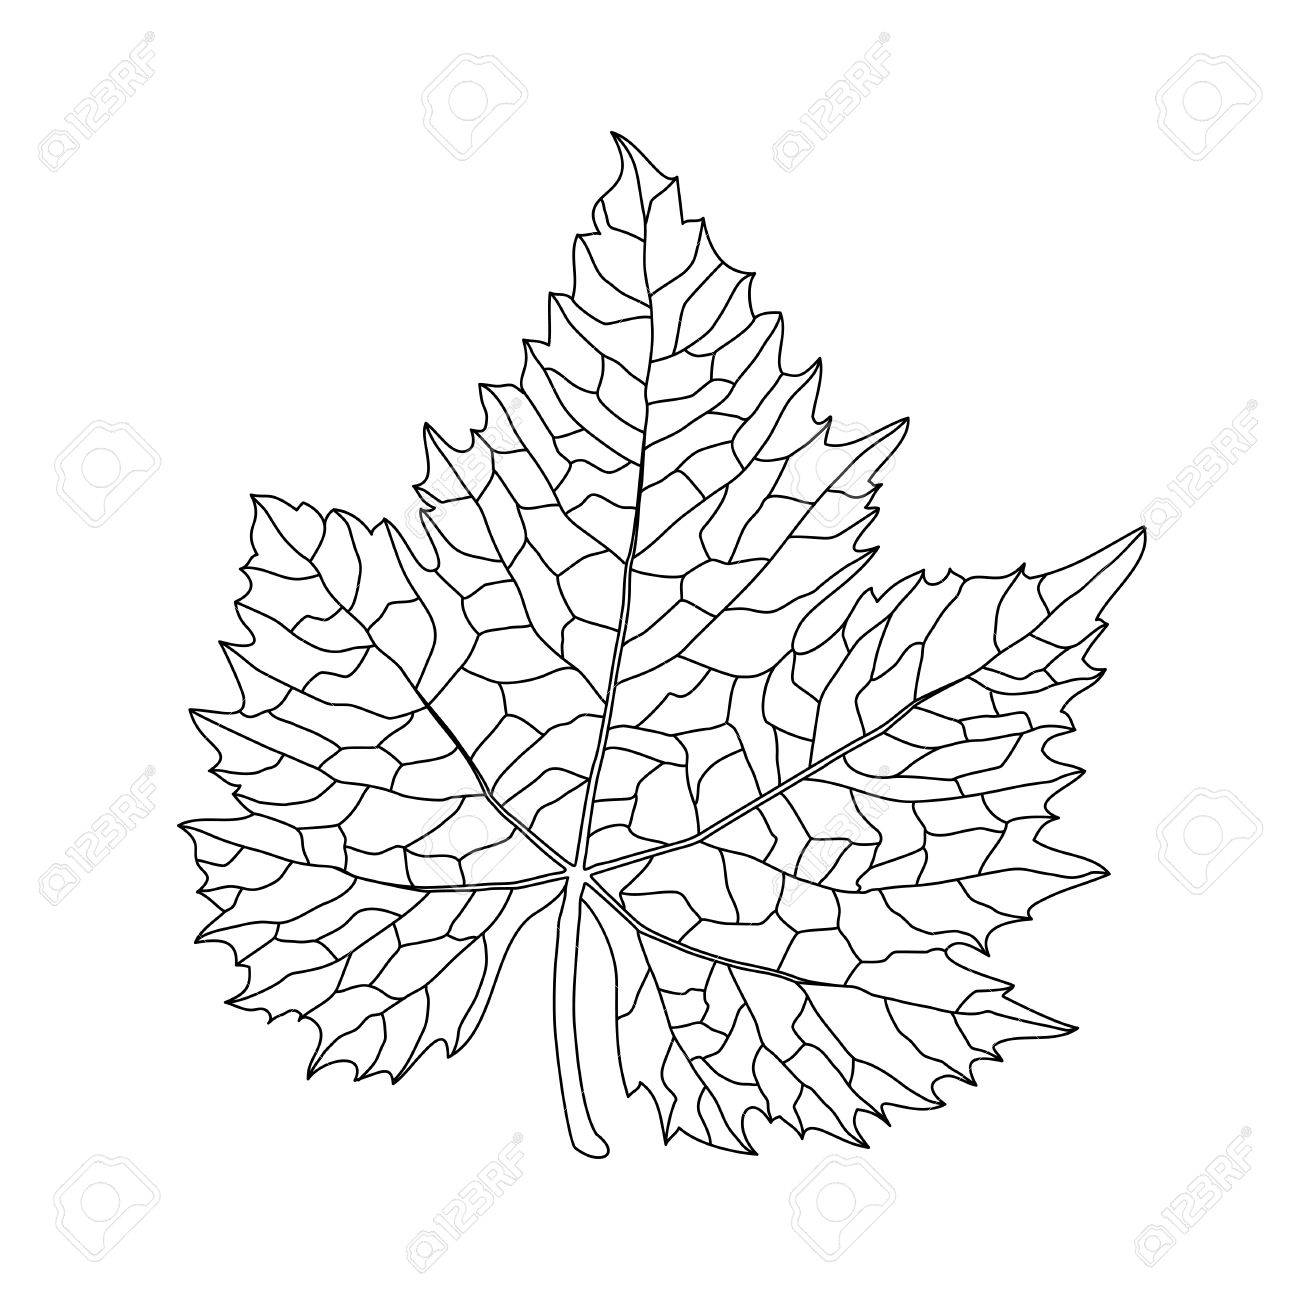 Black On White Grape Leaf Line Art Royalty Free Cliparts, Vectors ...